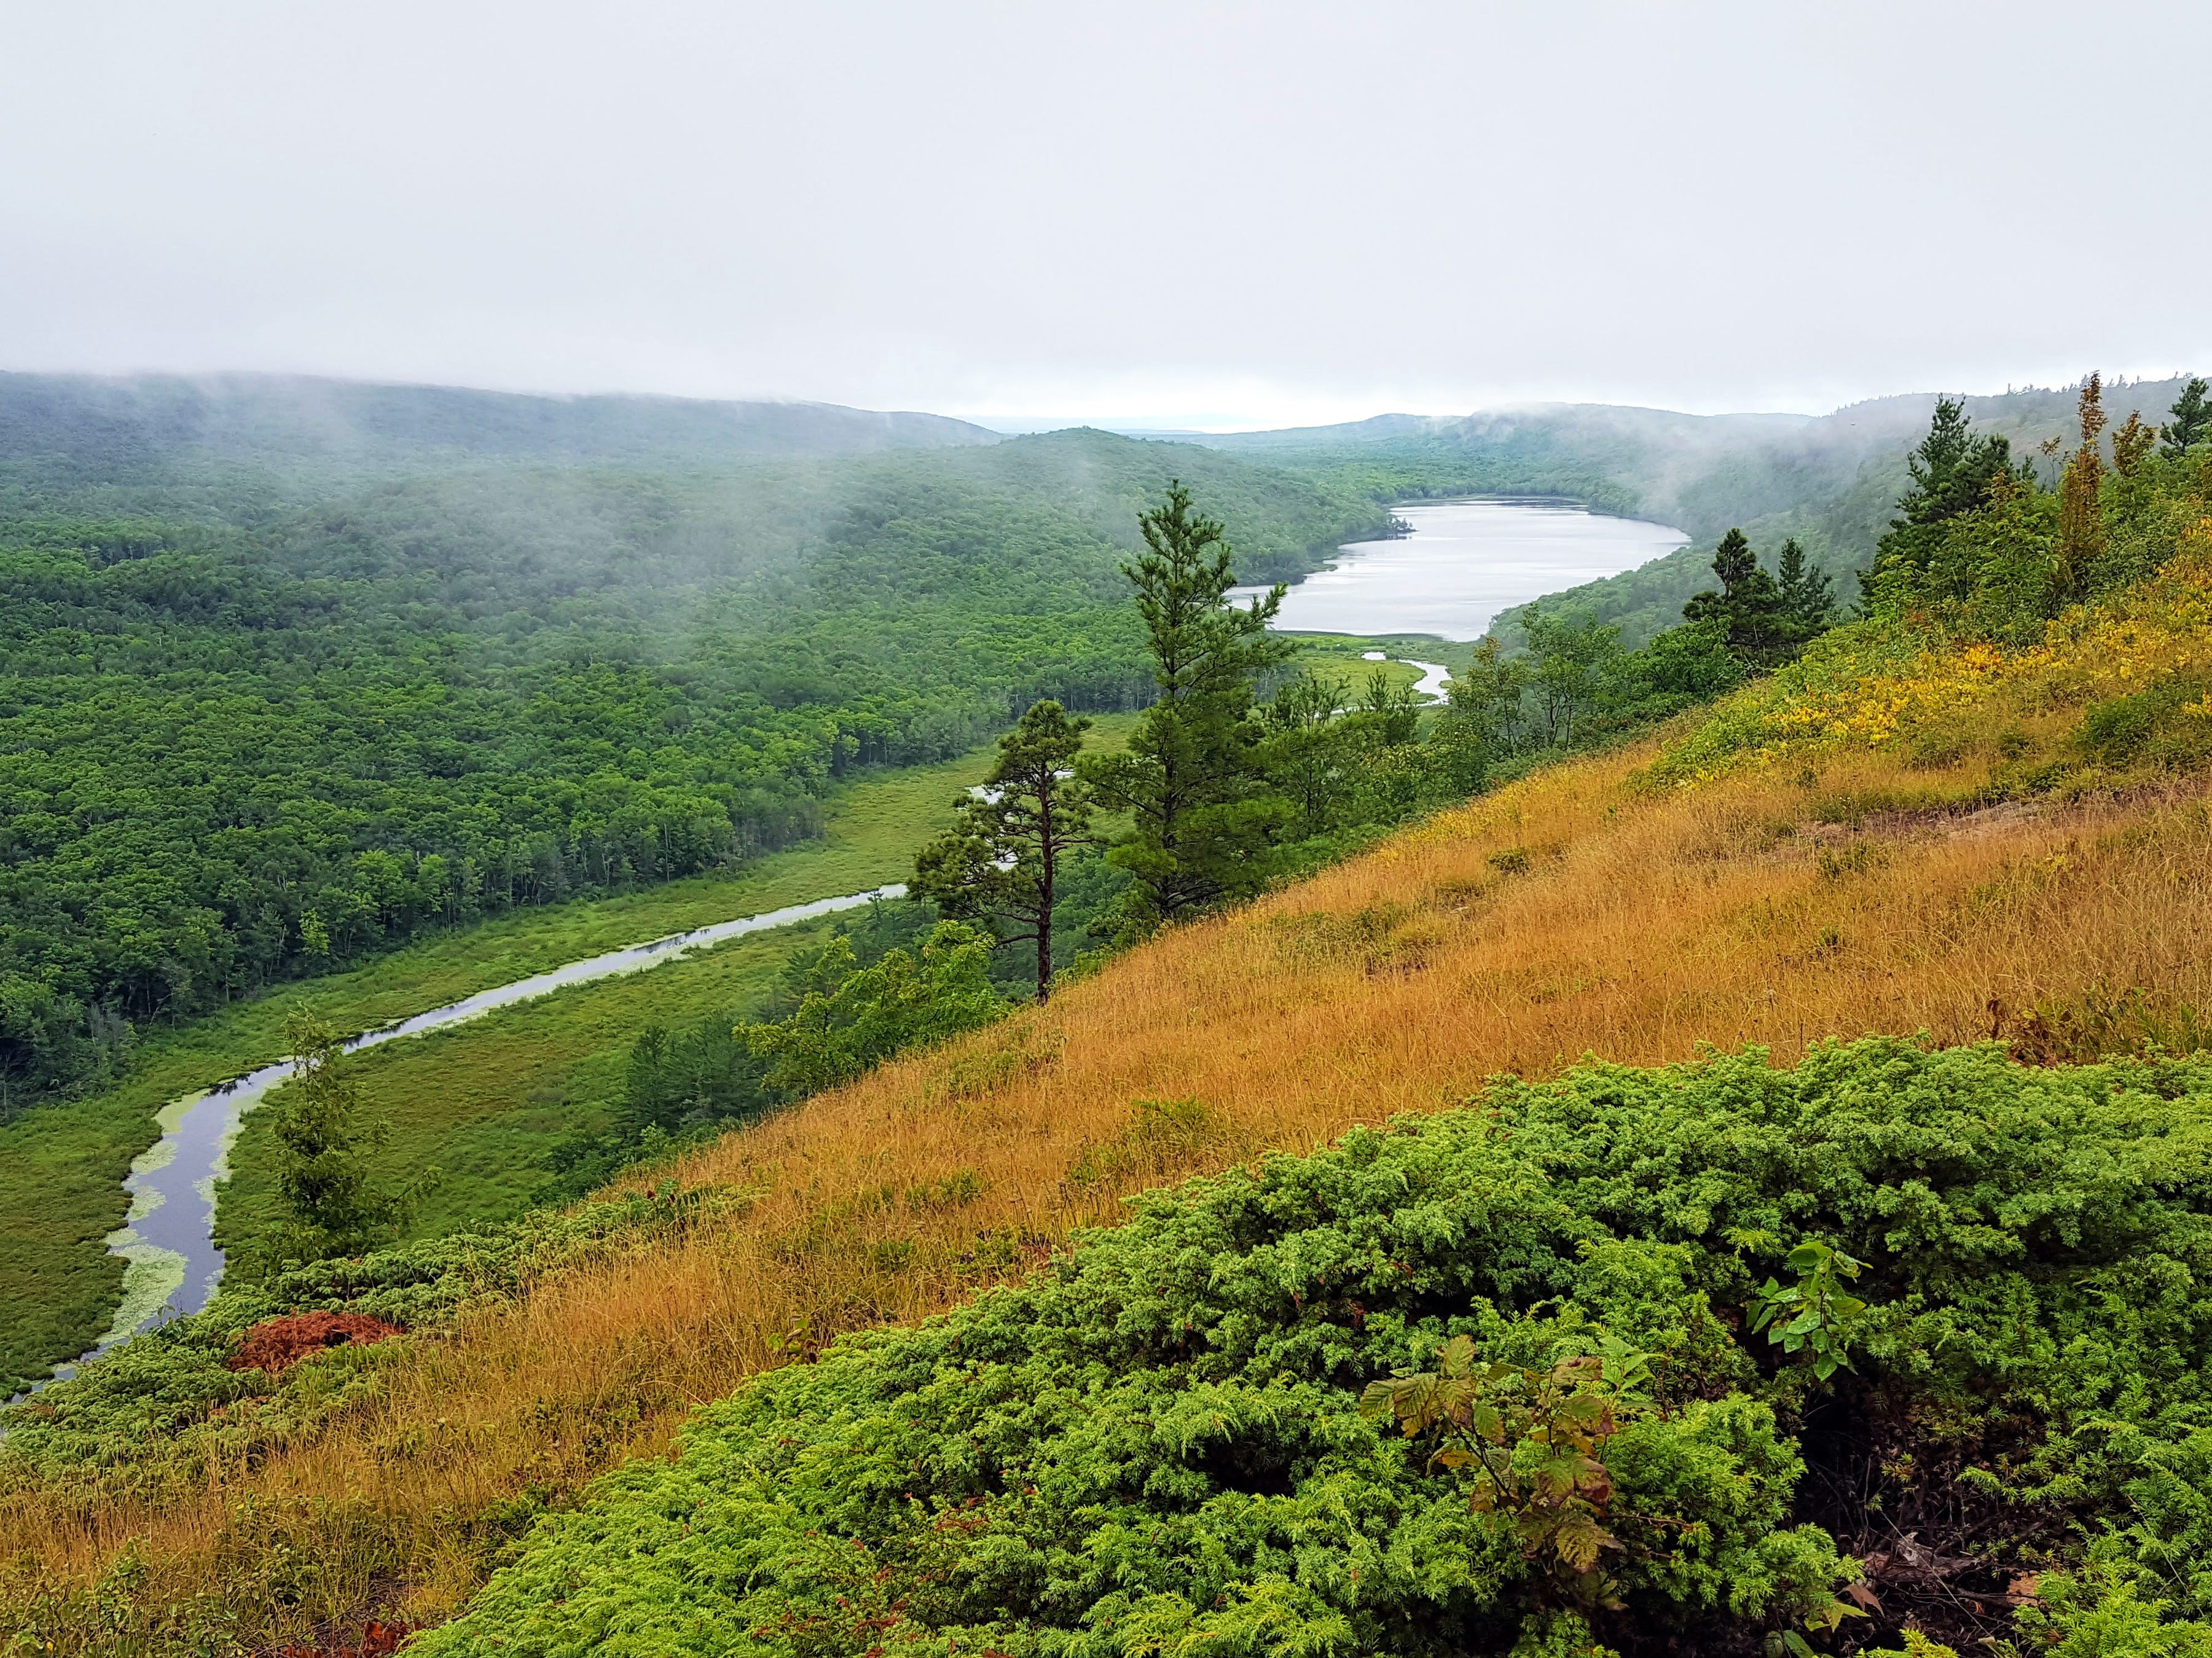 Fog clings to the hillsides around Lake of the Clouds and the Upper Carp River in the Porcupine Mountains Wilderness State Park in Michigan's Upper Peninsula.